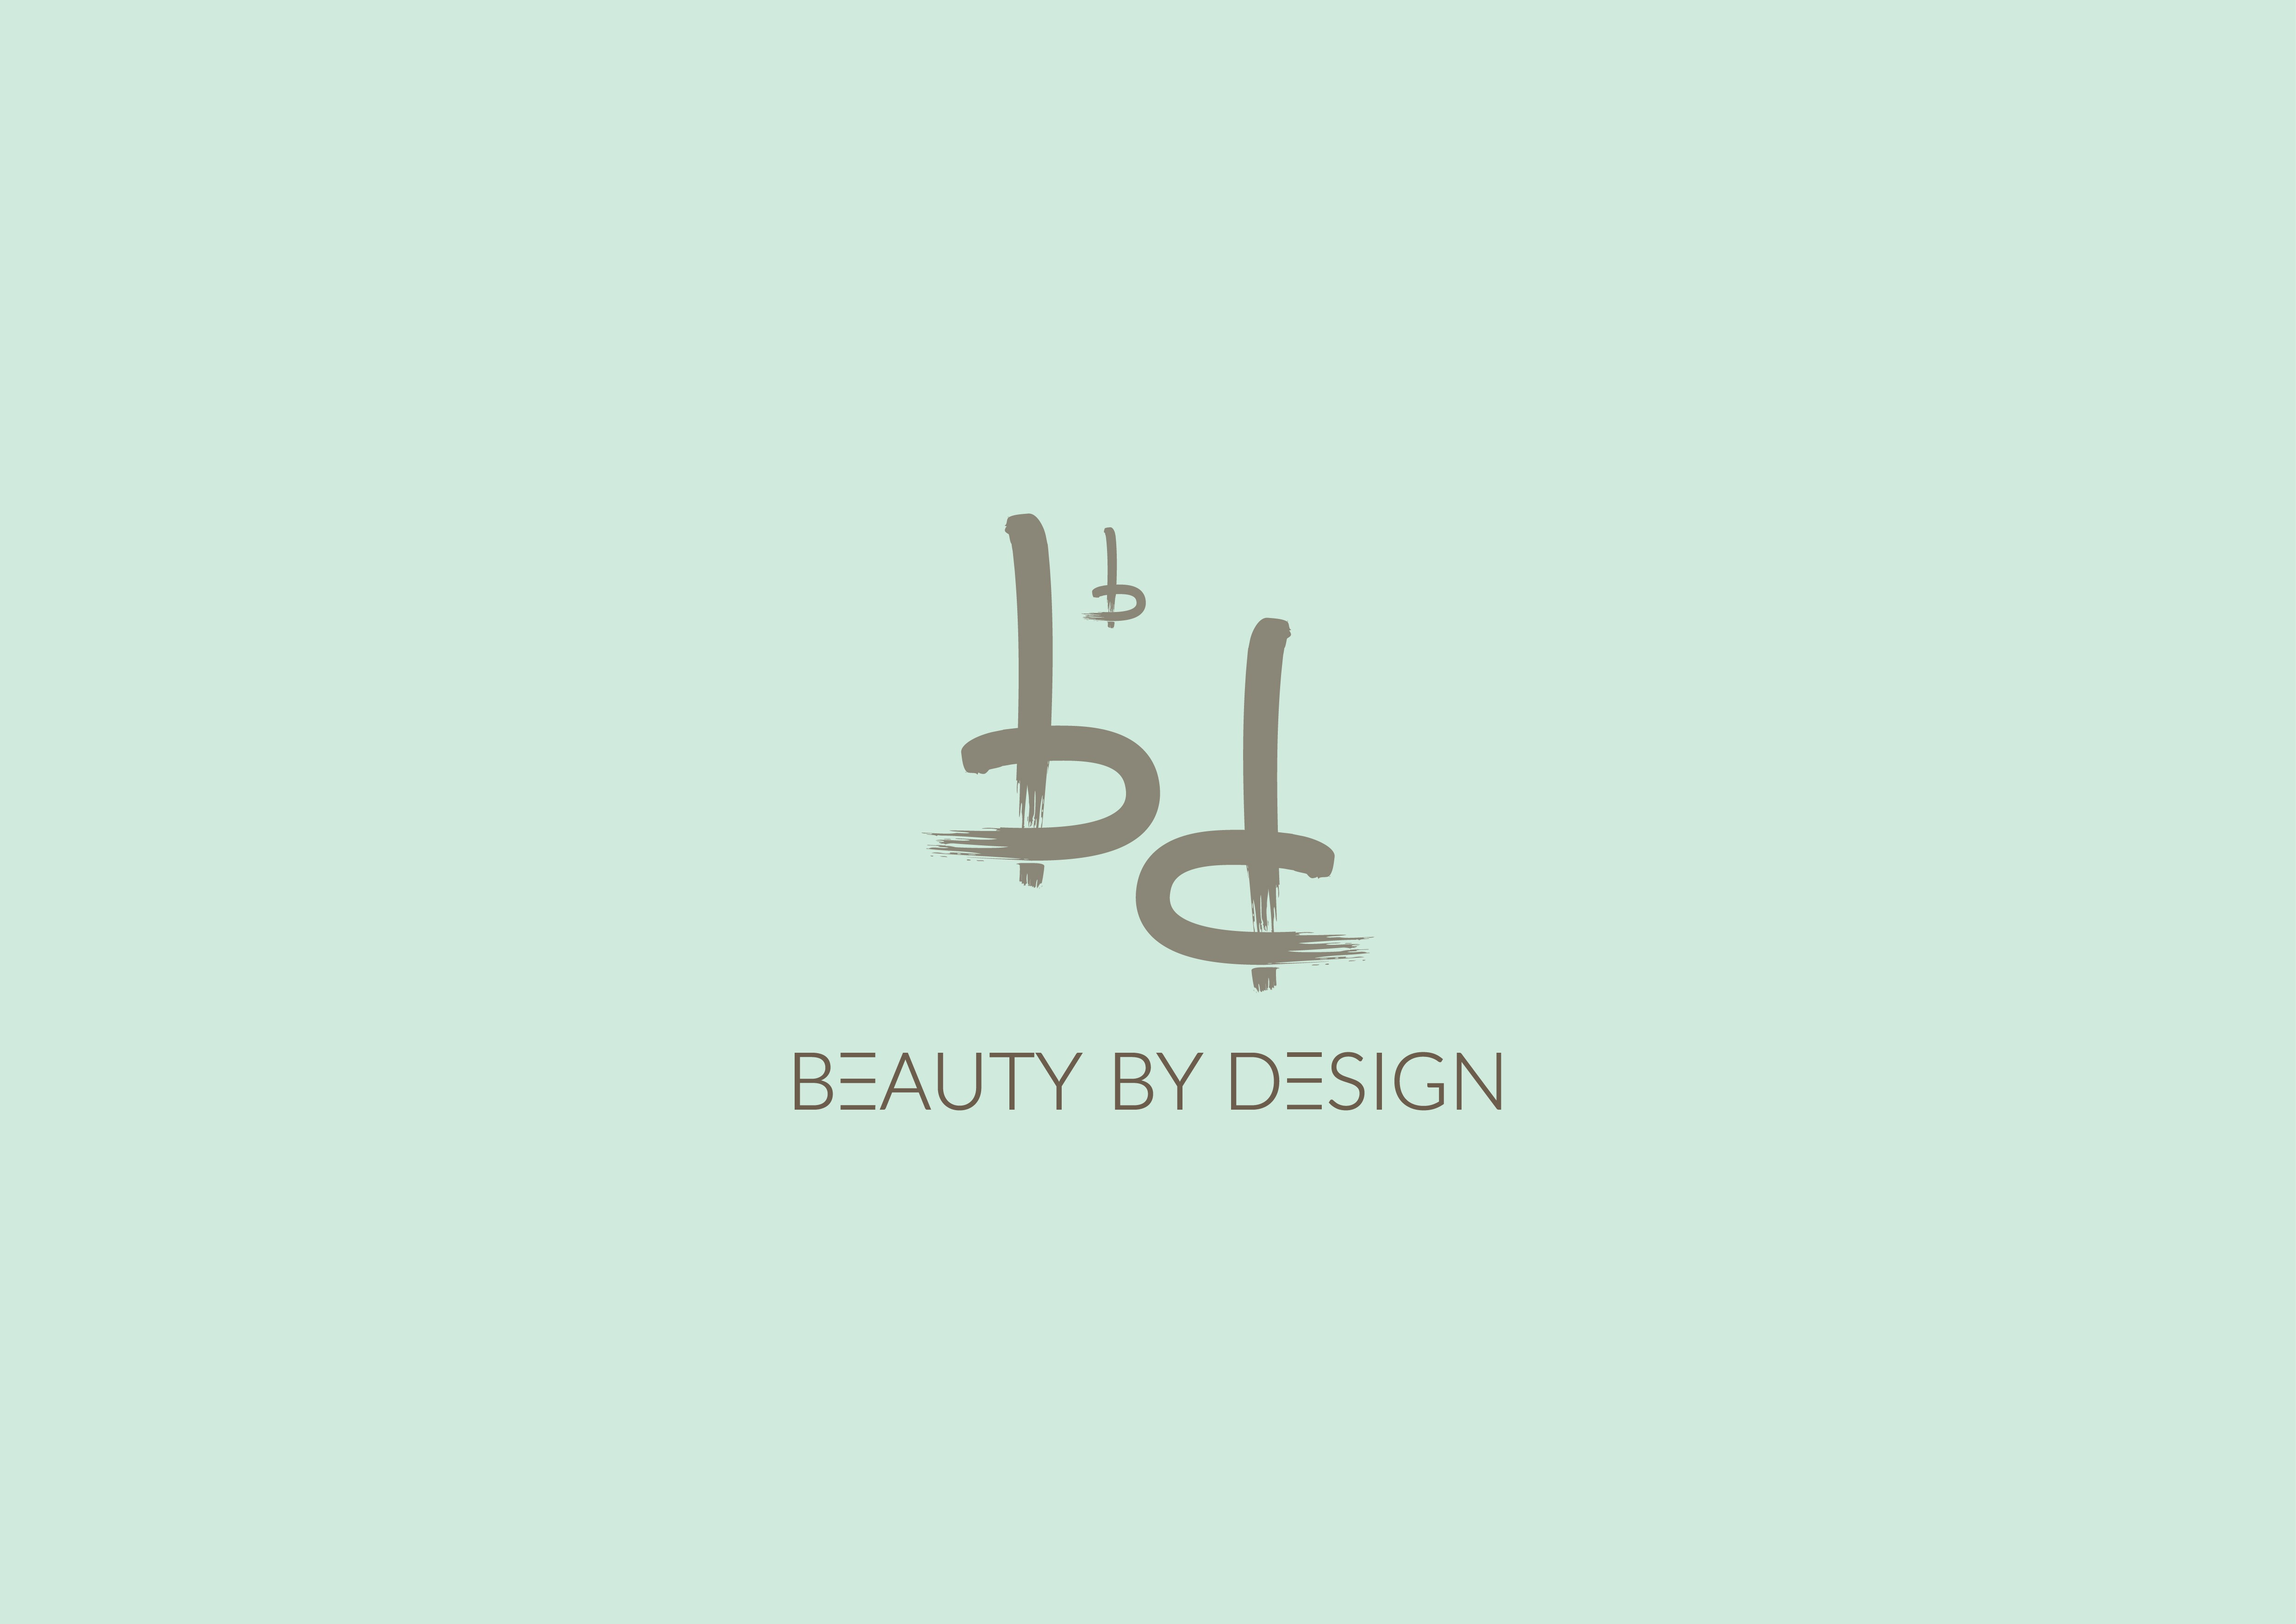 Turn our sketch into a clean, professional logo design for Beauty by Design!